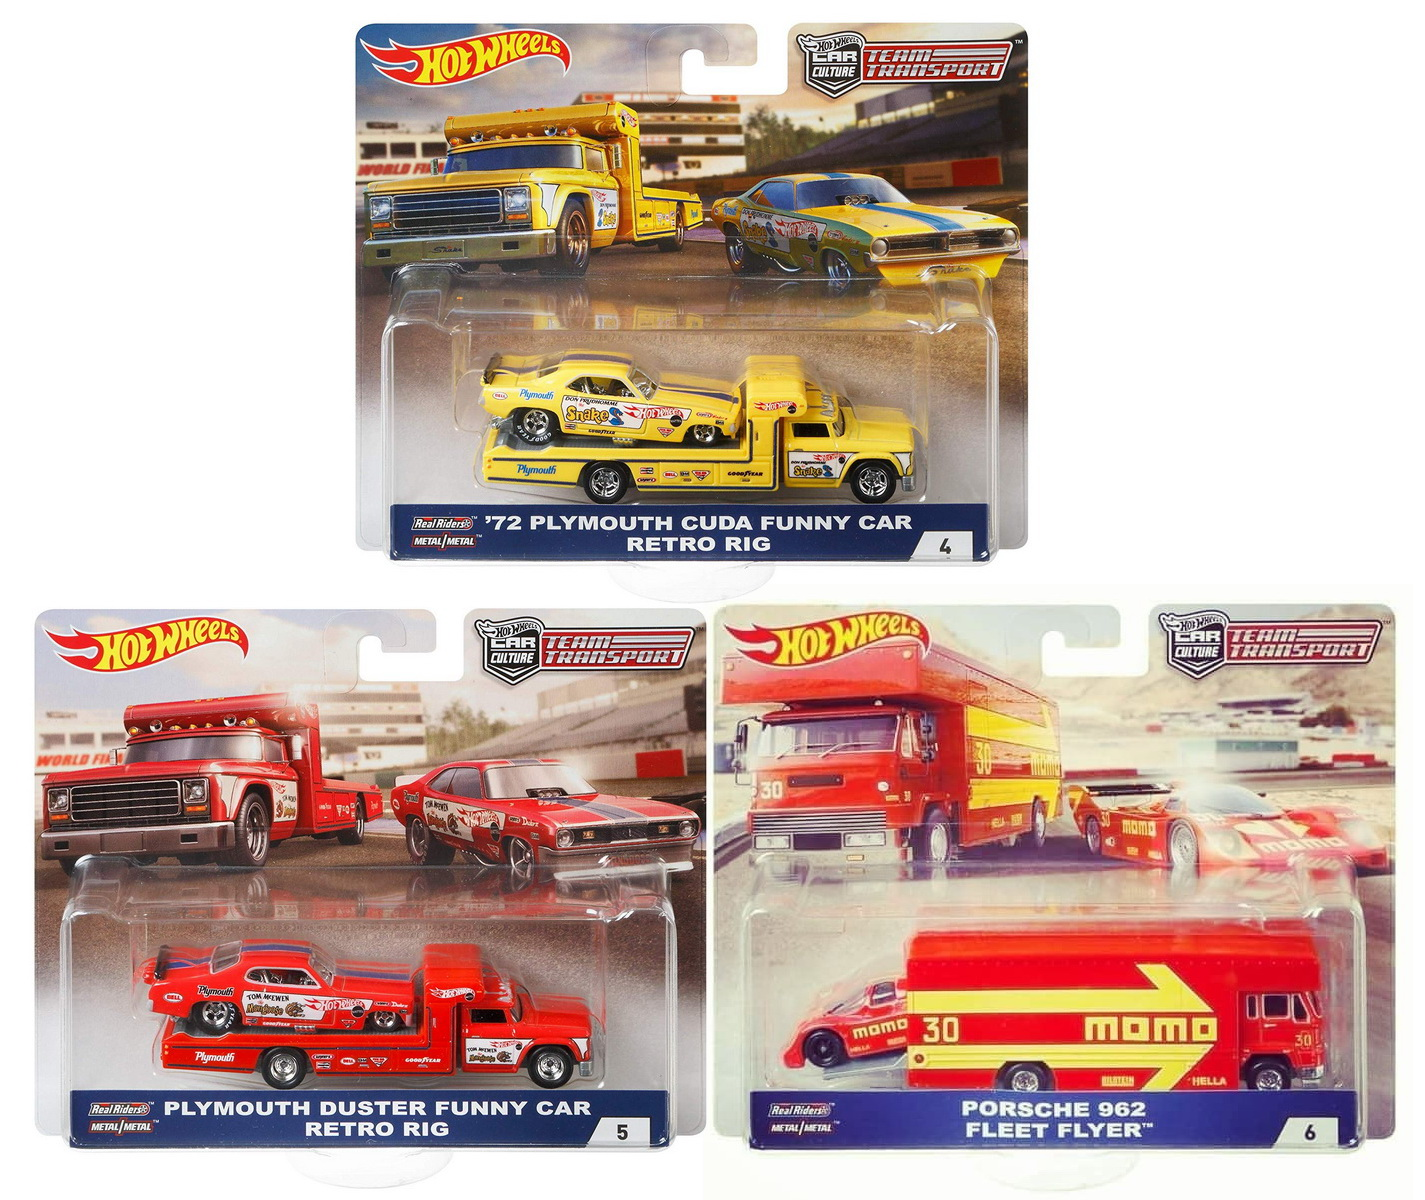 2018 Hot Wheels 50th Anniversary Car Culture Team Transport Set of 3 Car, Snake, Mongoose & Porsche 1 64 Scale... by